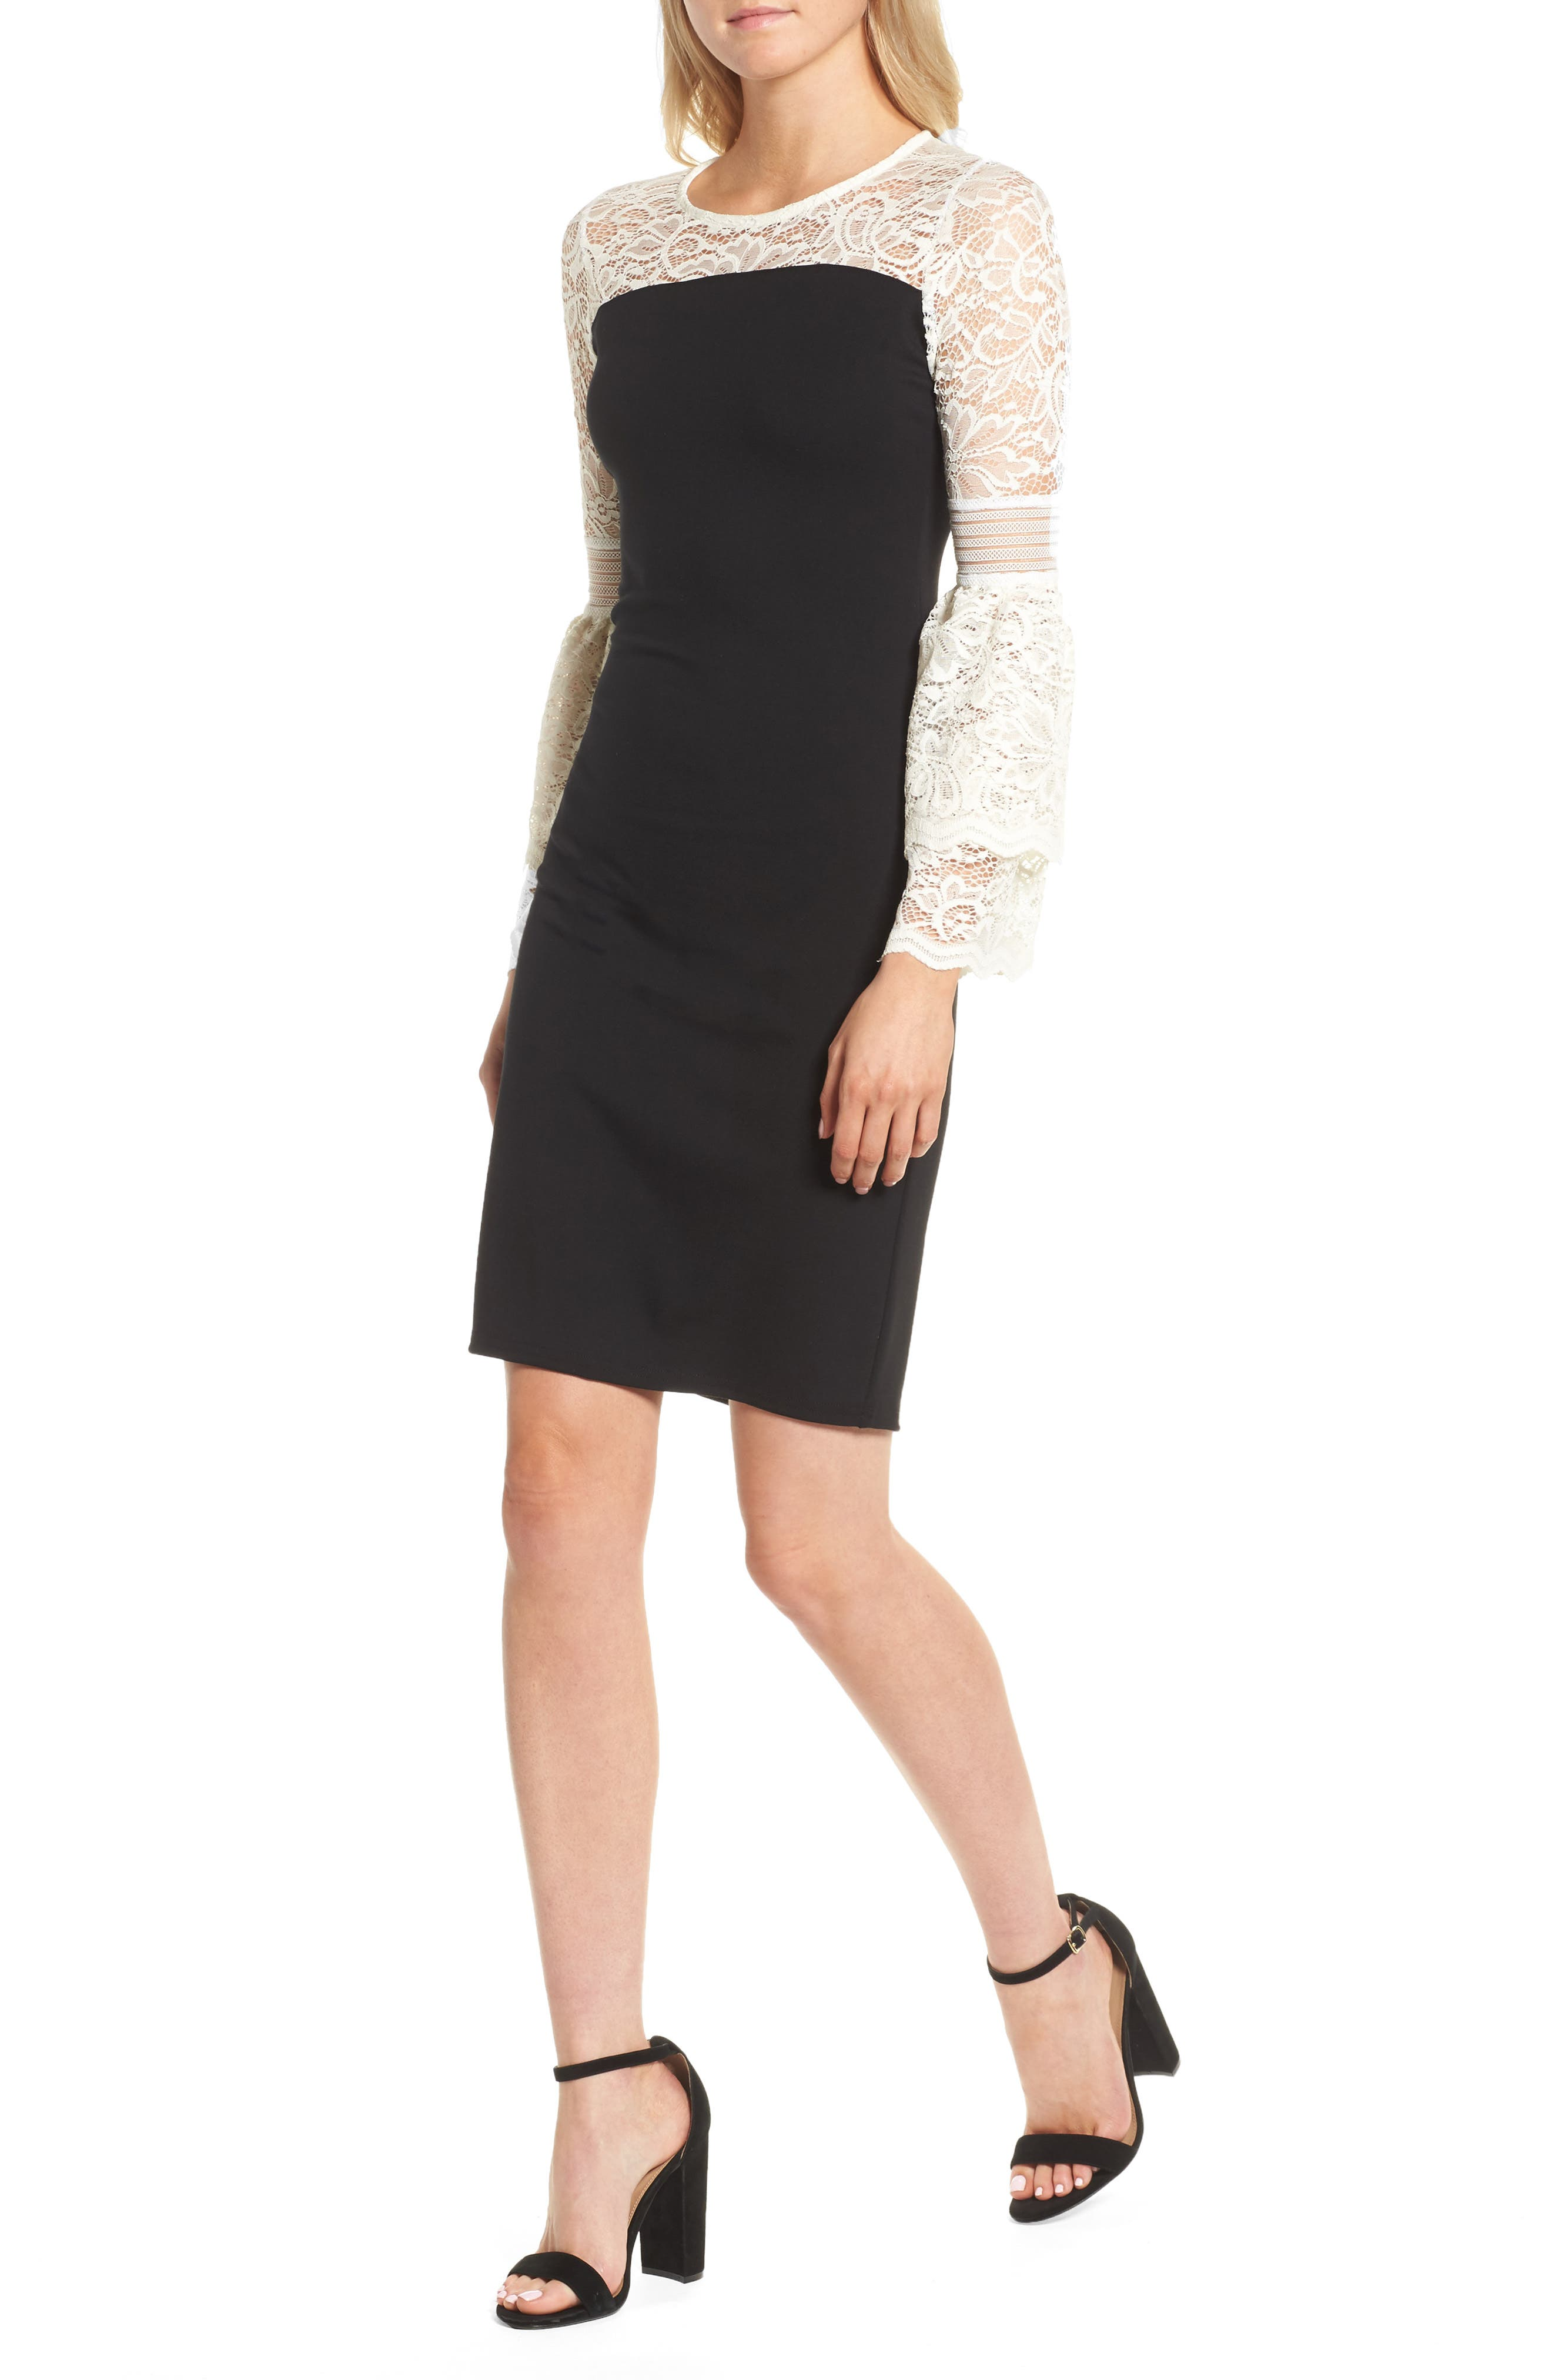 Floetry Bell Sleeve Sheath Dress,                             Main thumbnail 1, color,                             Cream Lace/ Black